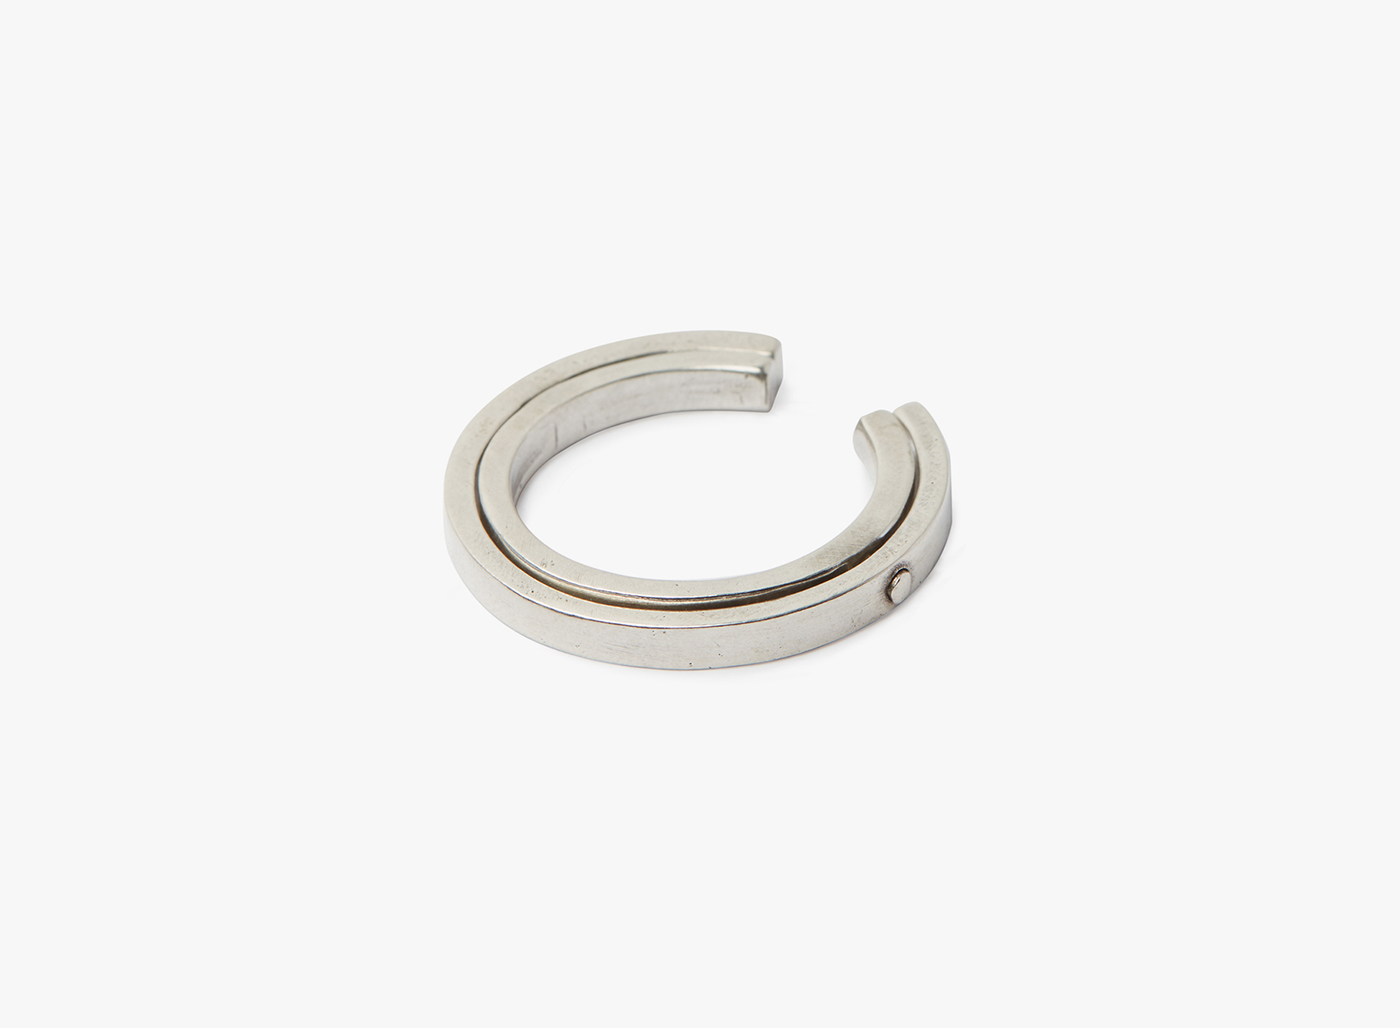 Image of 2.7mm Double Hinge Ring